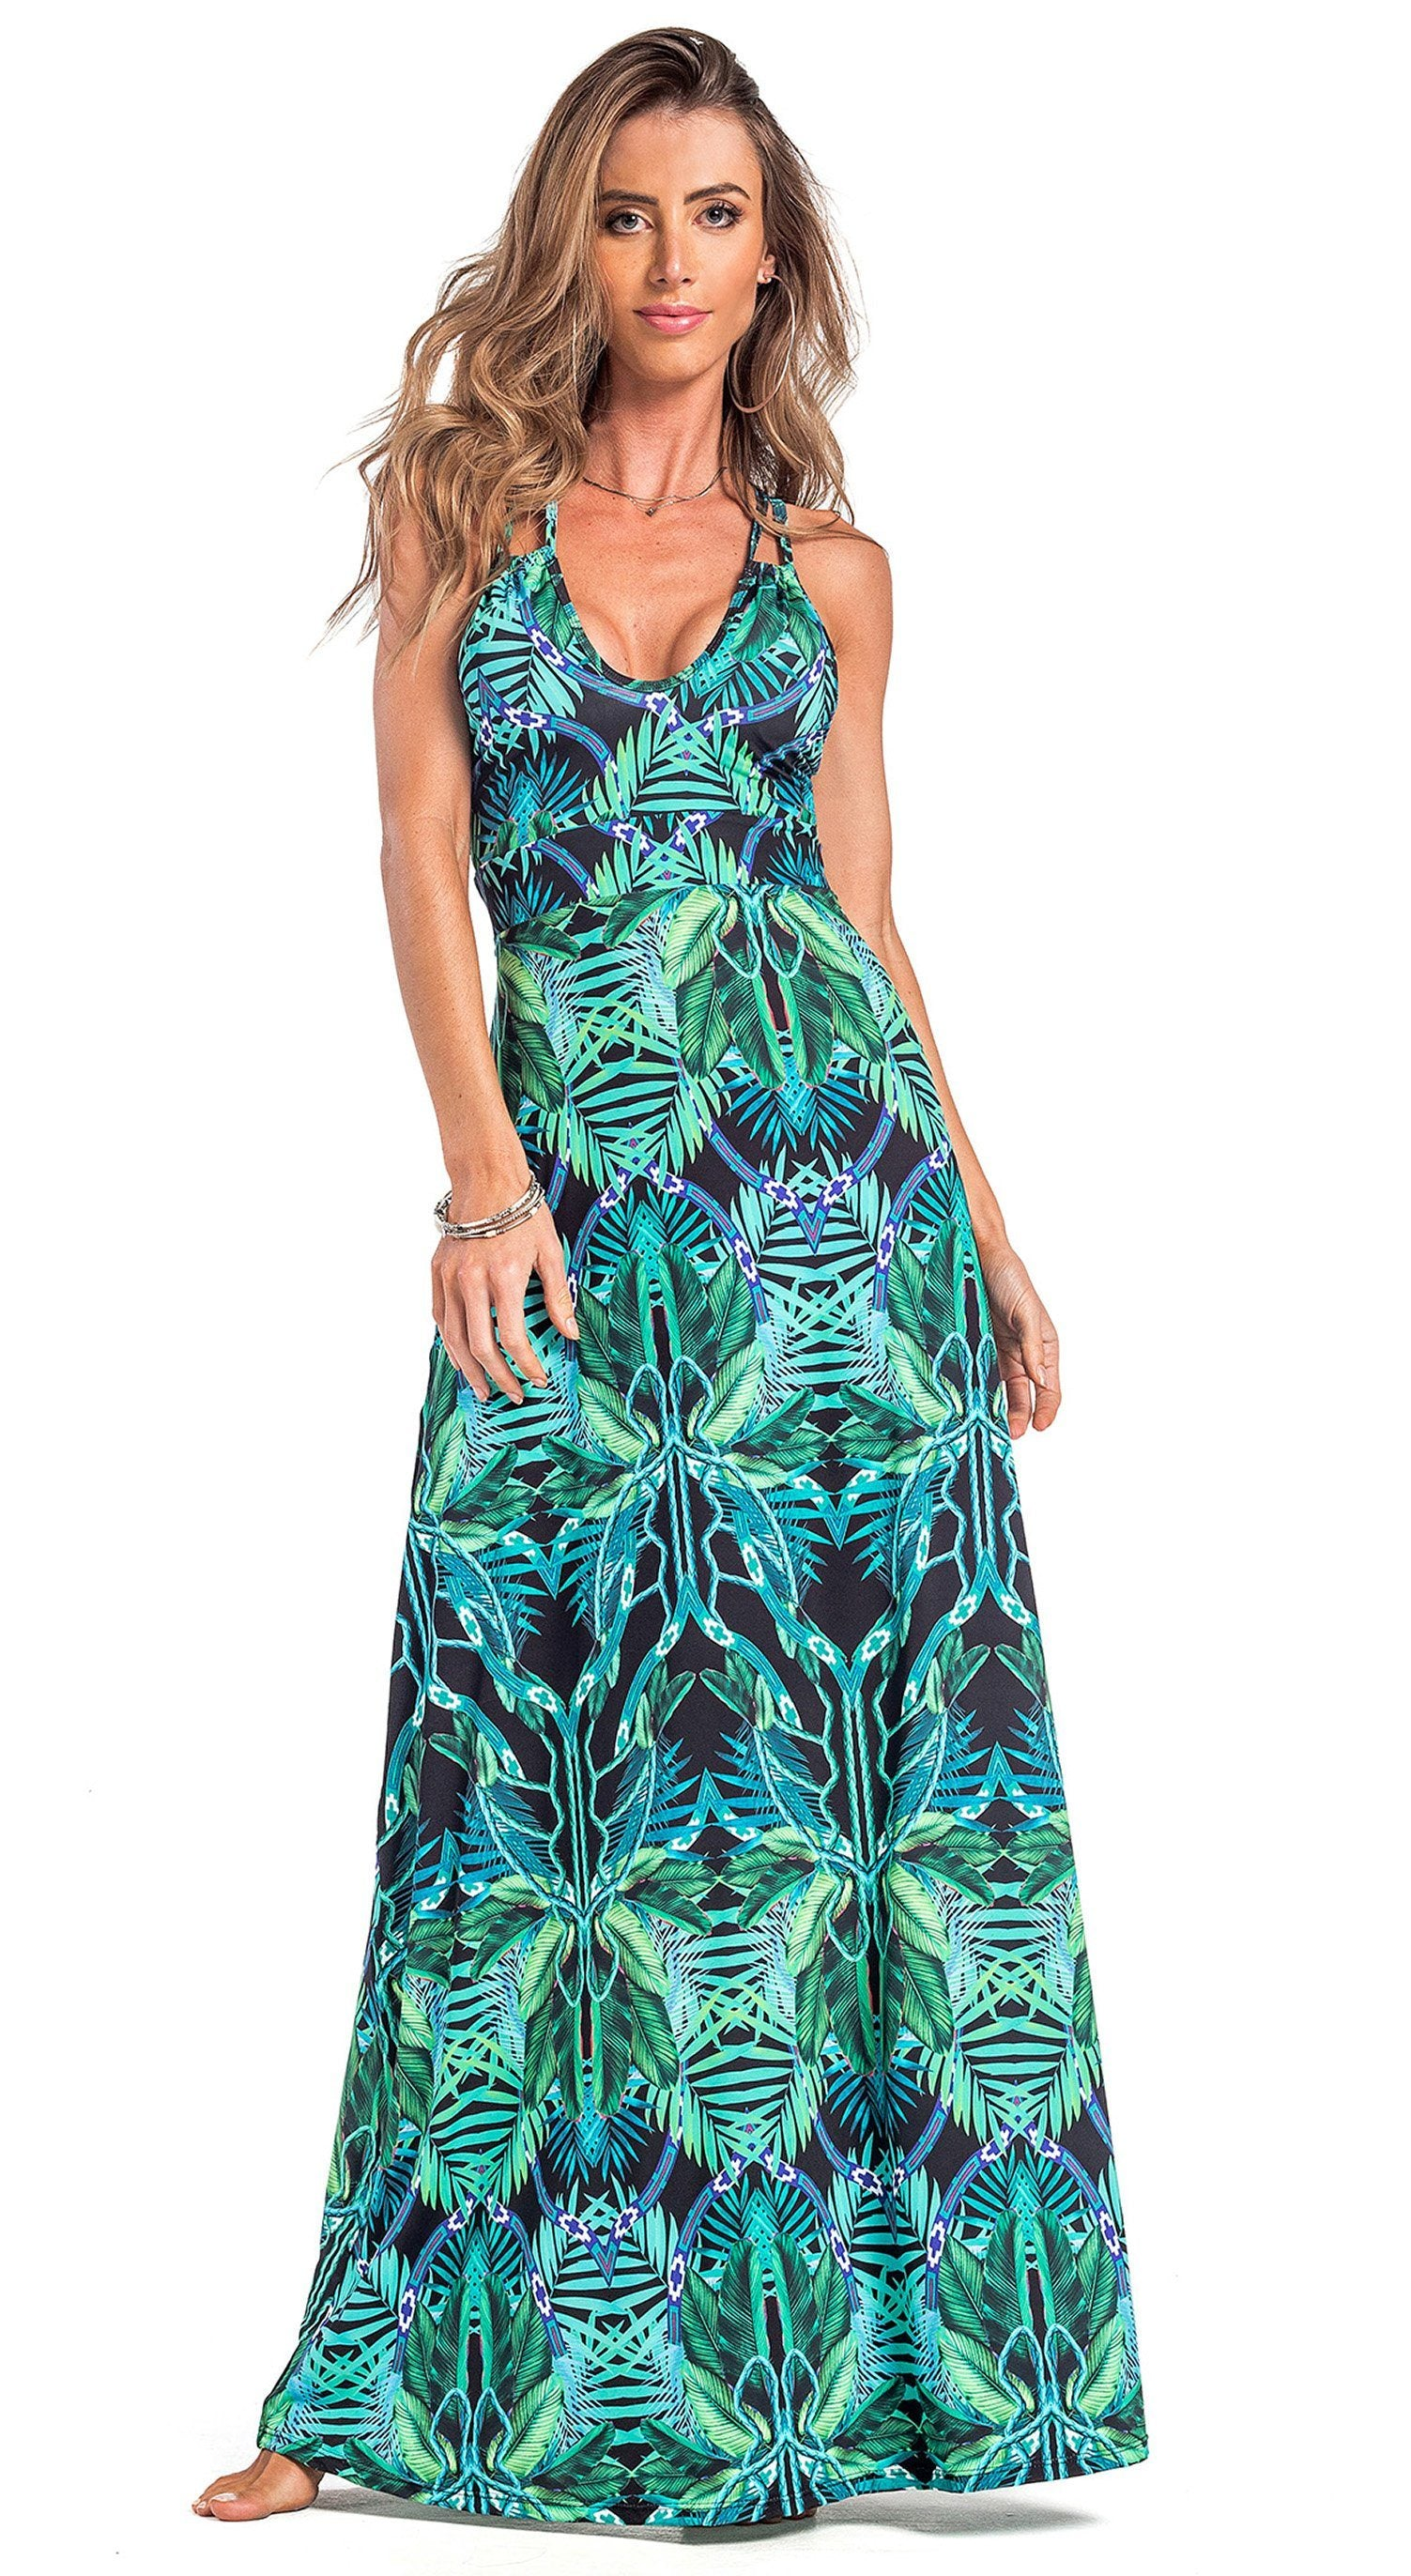 Brazilian Dress Cover Up - Exotic Print